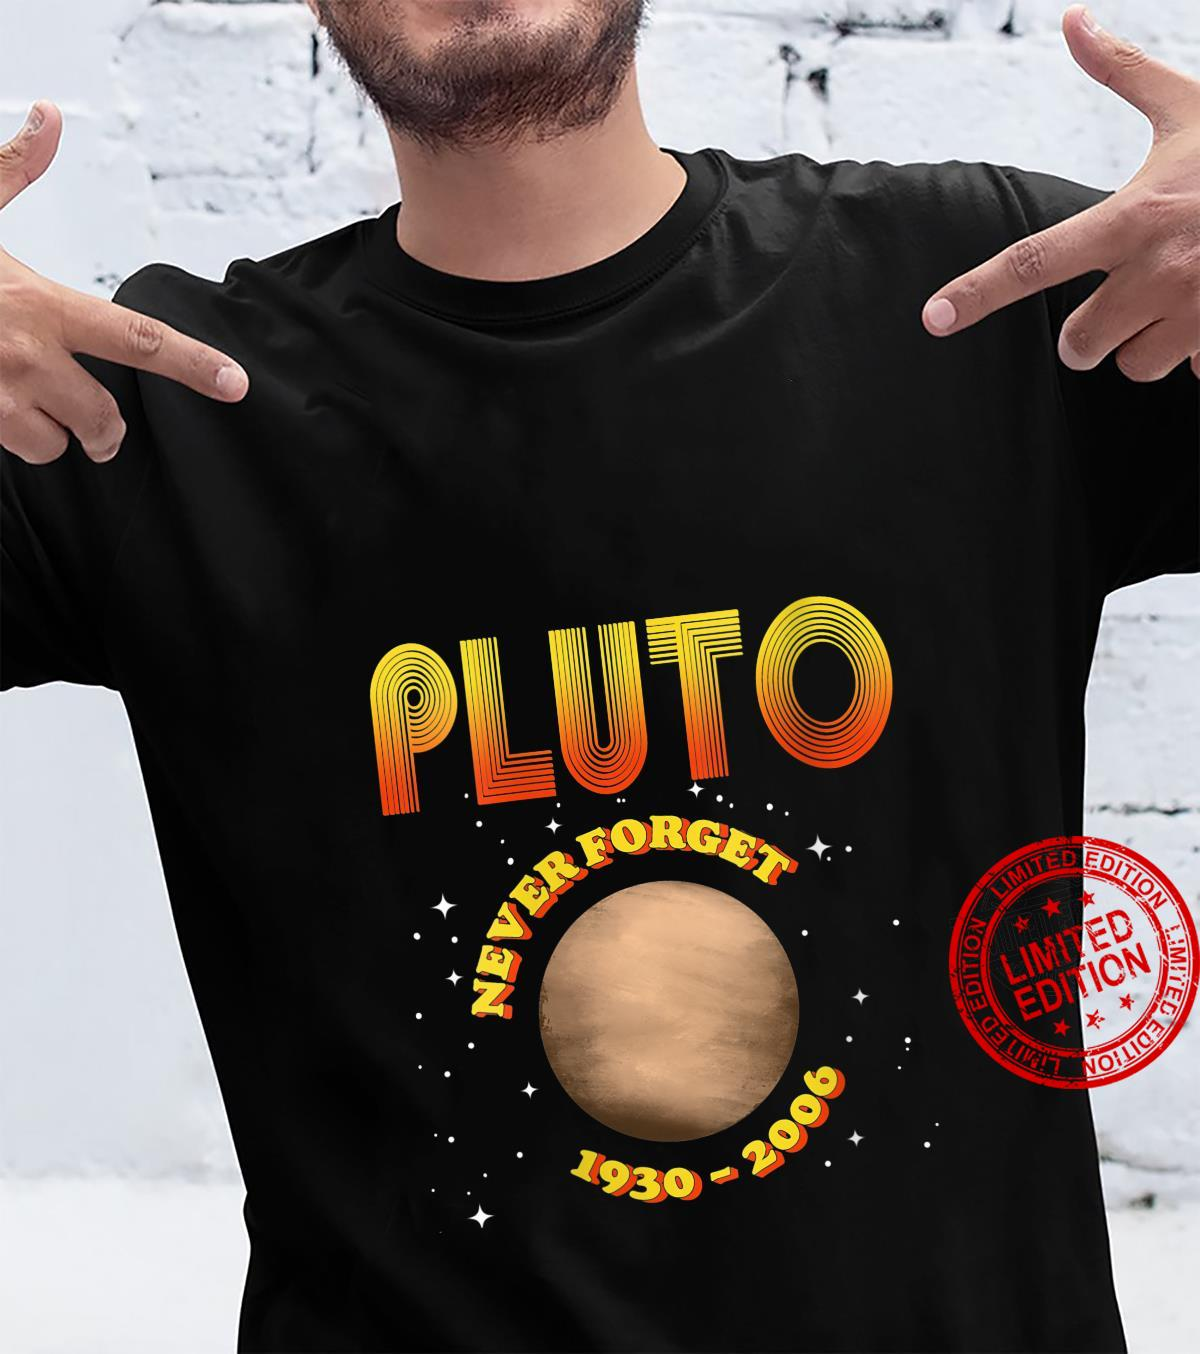 Womens Pluto Never Forget 19302006 Vintage Planet Space Shirt